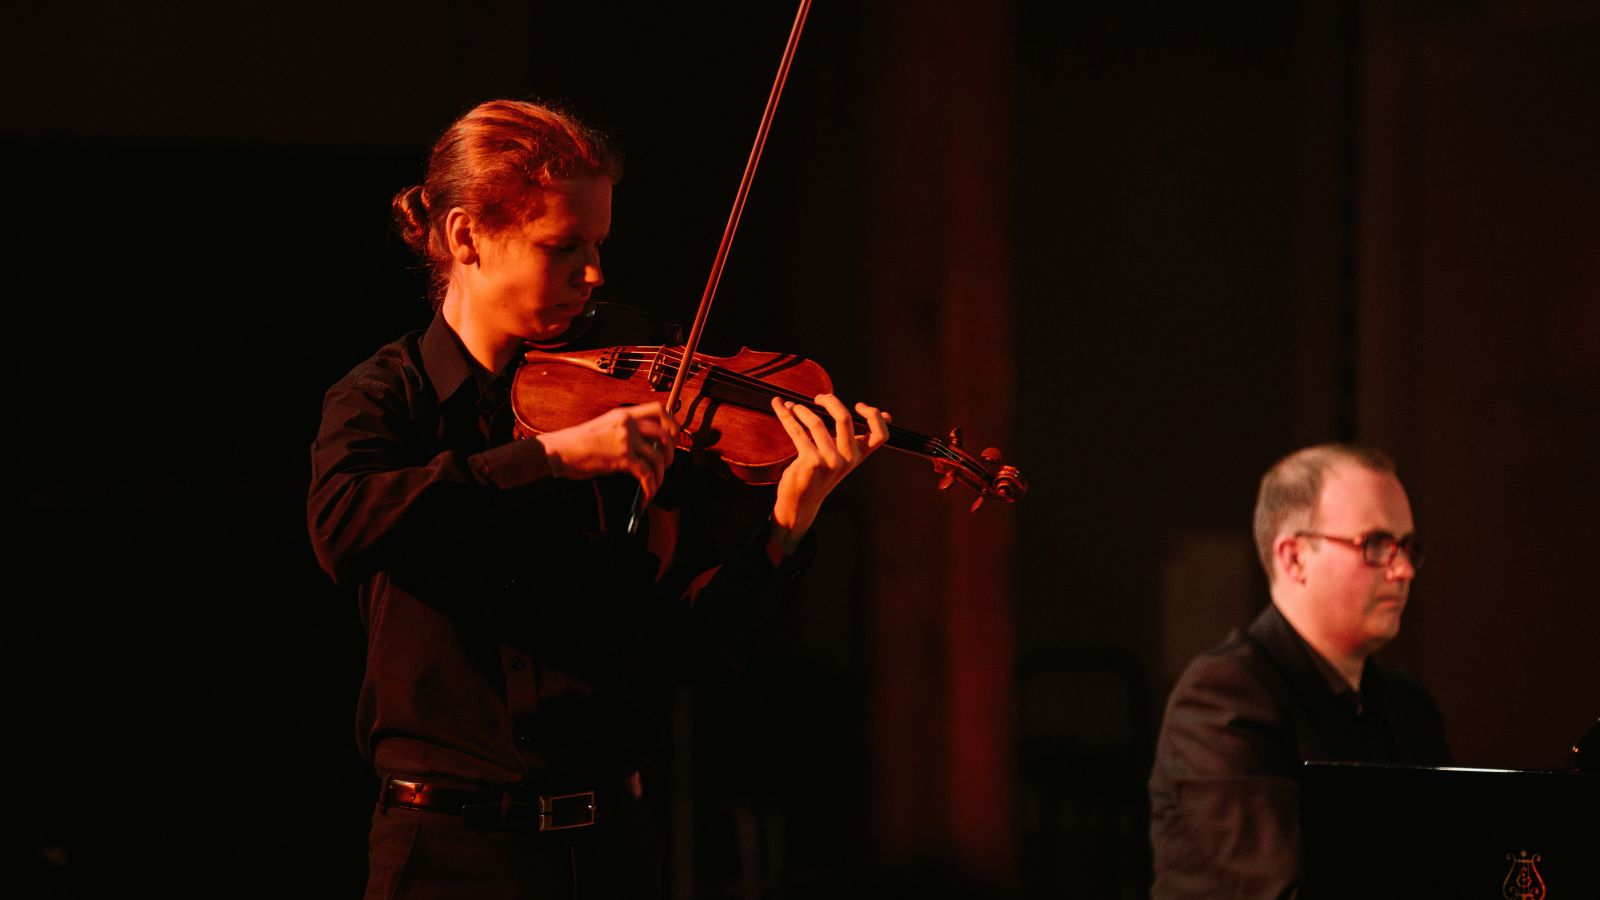 A violinist and pianist perfom